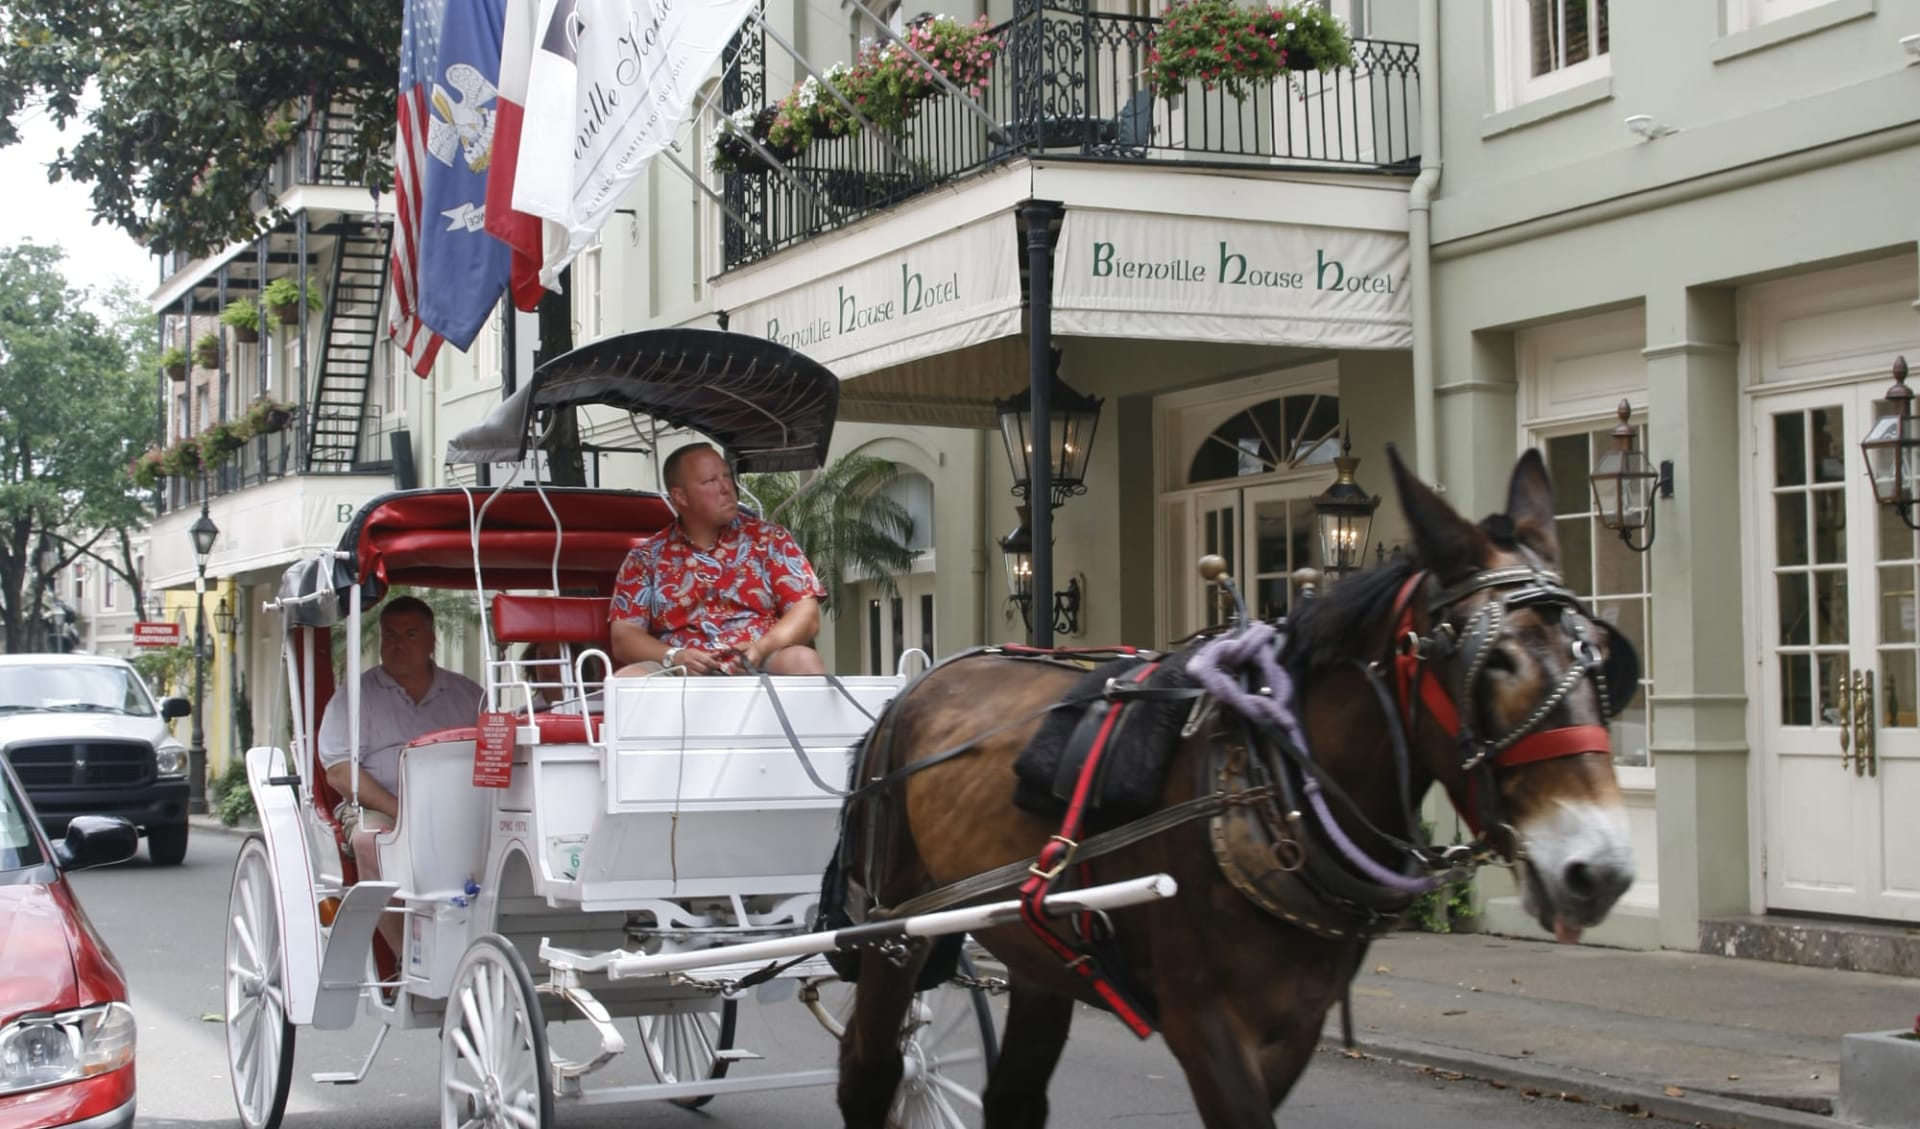 Bienville House in New Orleans:  Bienville House - Carriage